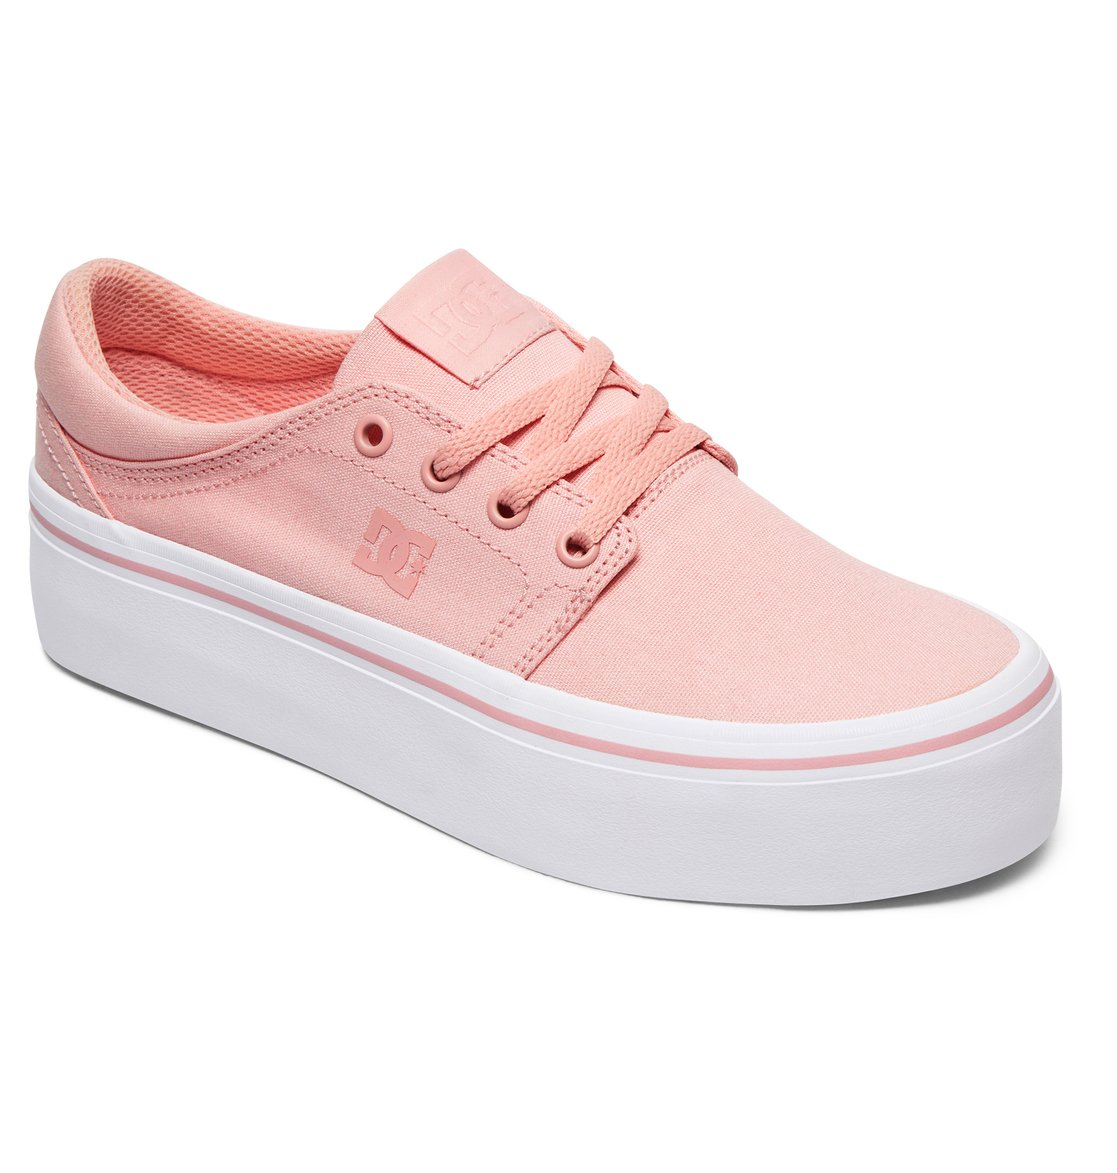 clear and distinctive later hot new products Trase Platform TX - Shoes for Women